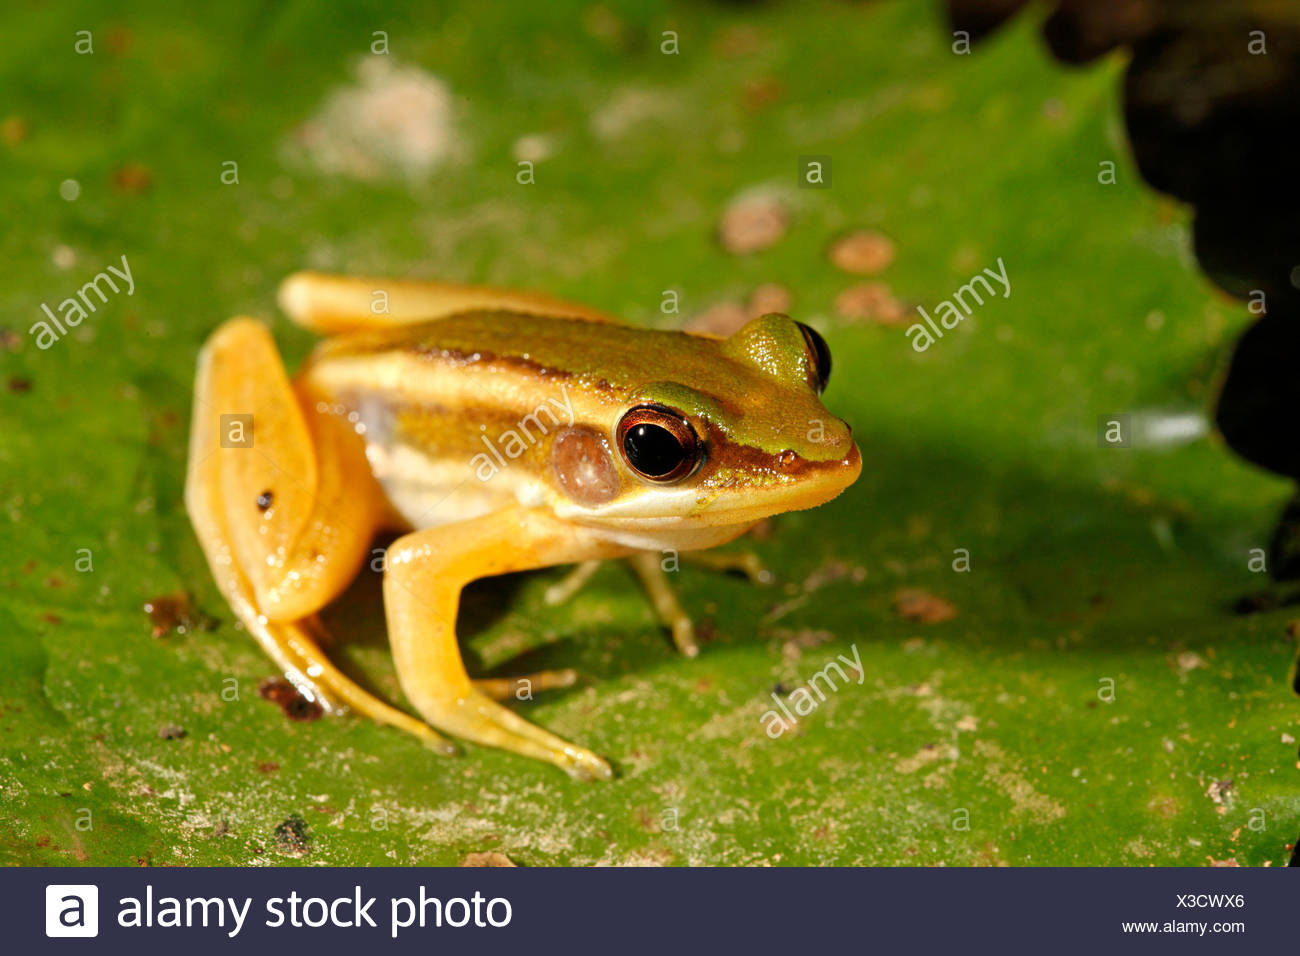 photo of a green paddy frog - Stock Image